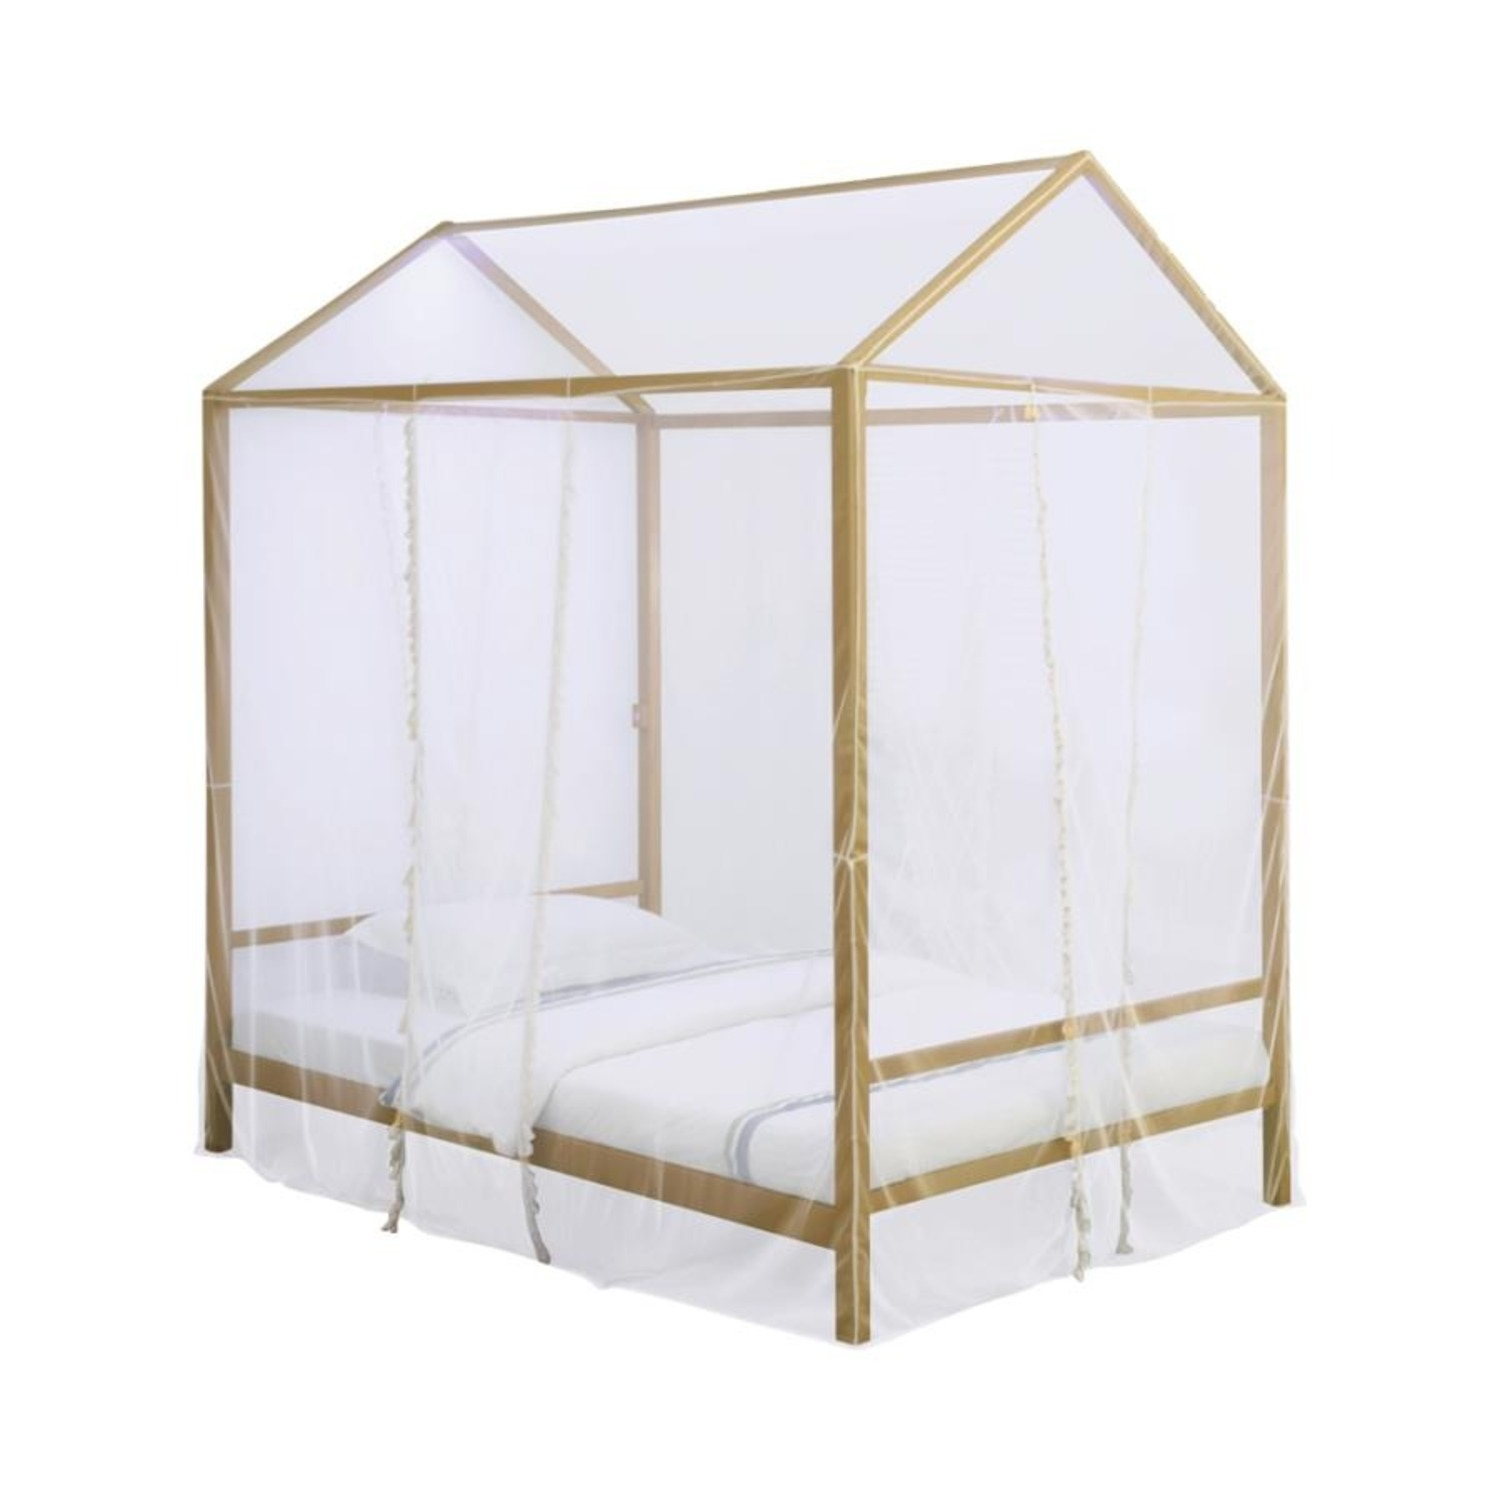 LED Full Tent Bed In Matte Gold W/ White Fabric - image-0